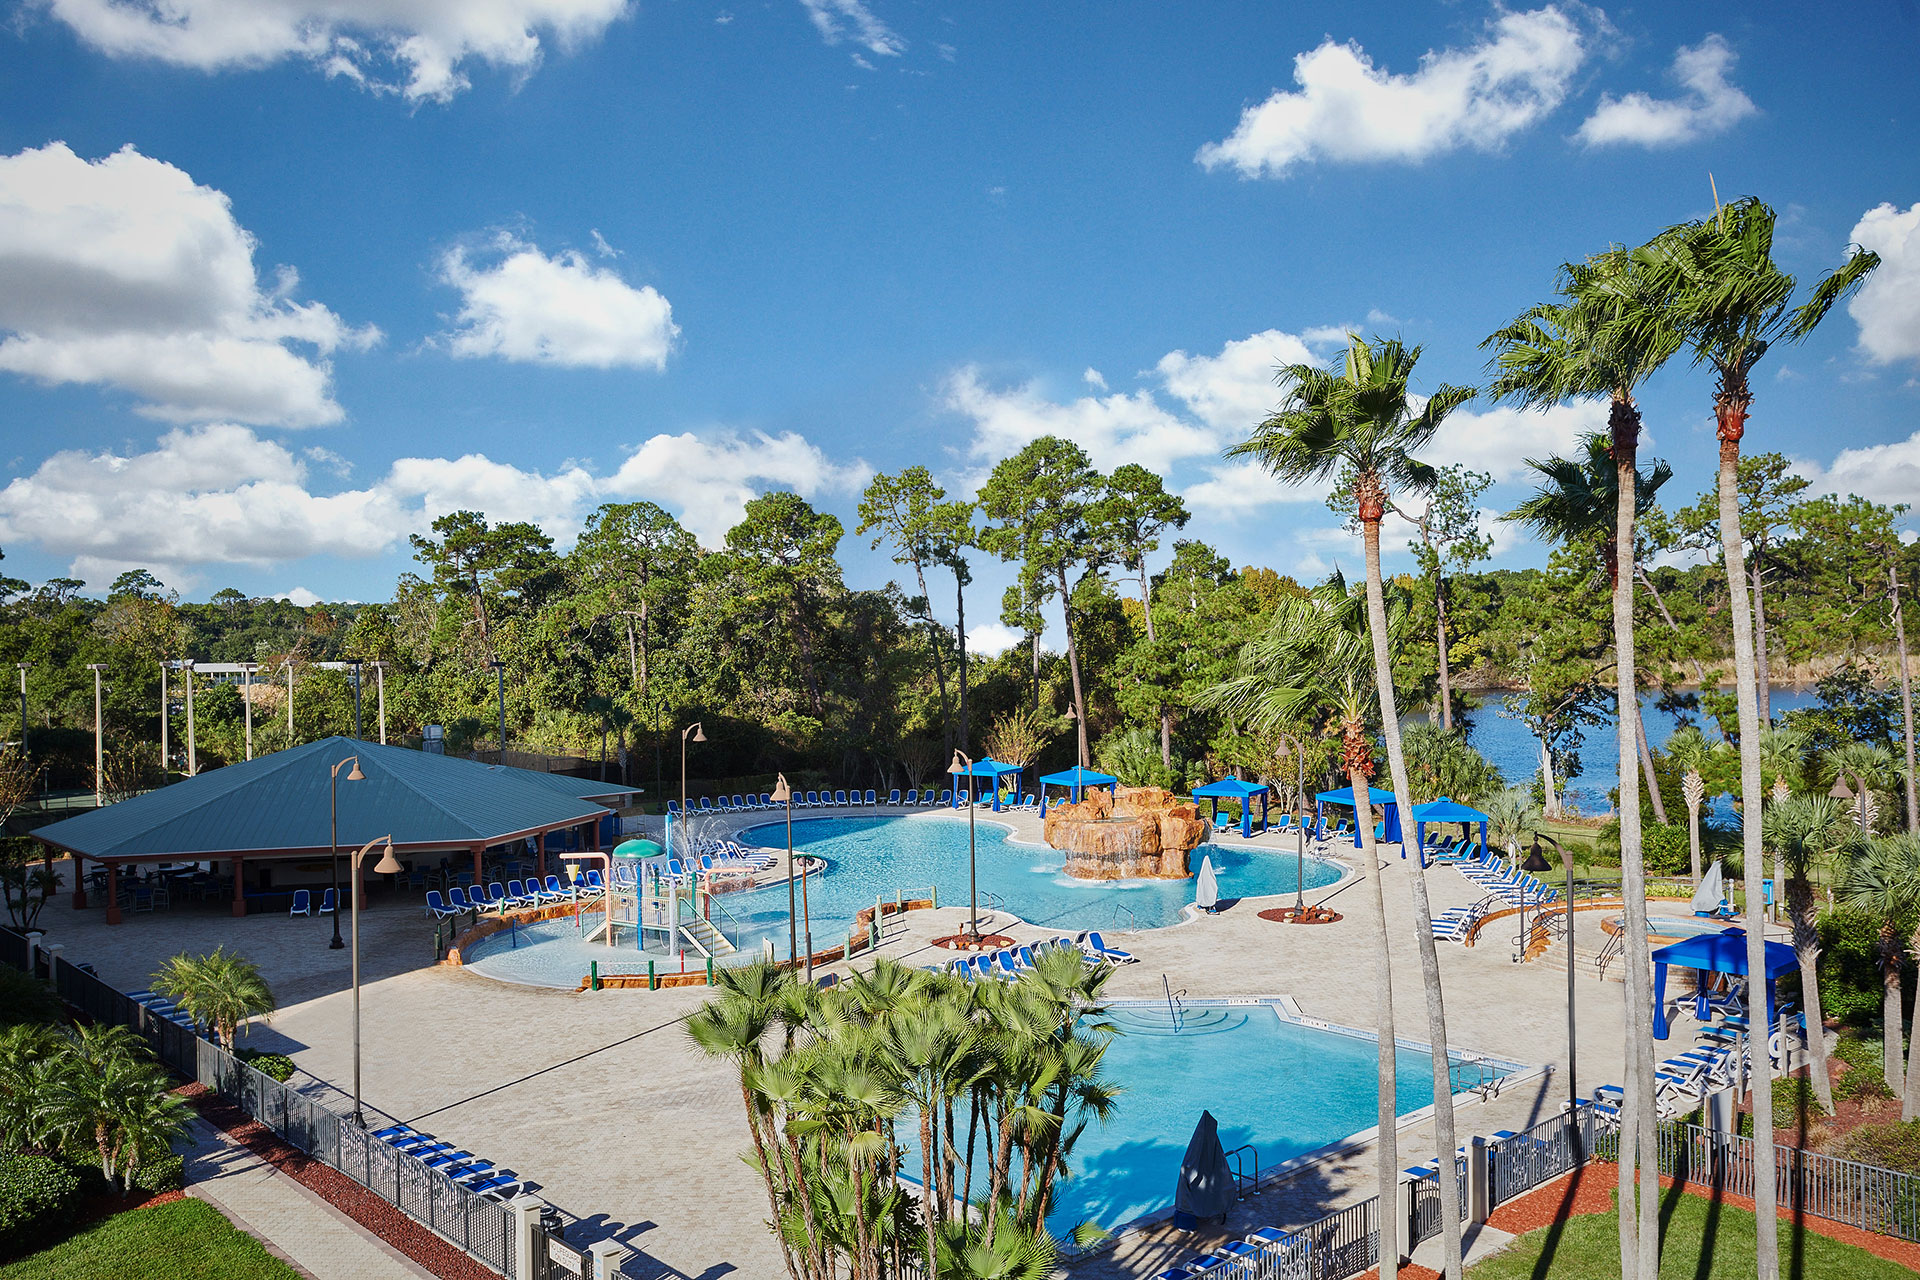 Wyndham Garden Lake Buena Vista; Courtesy of Wyndham Garden Lake Buena Vista